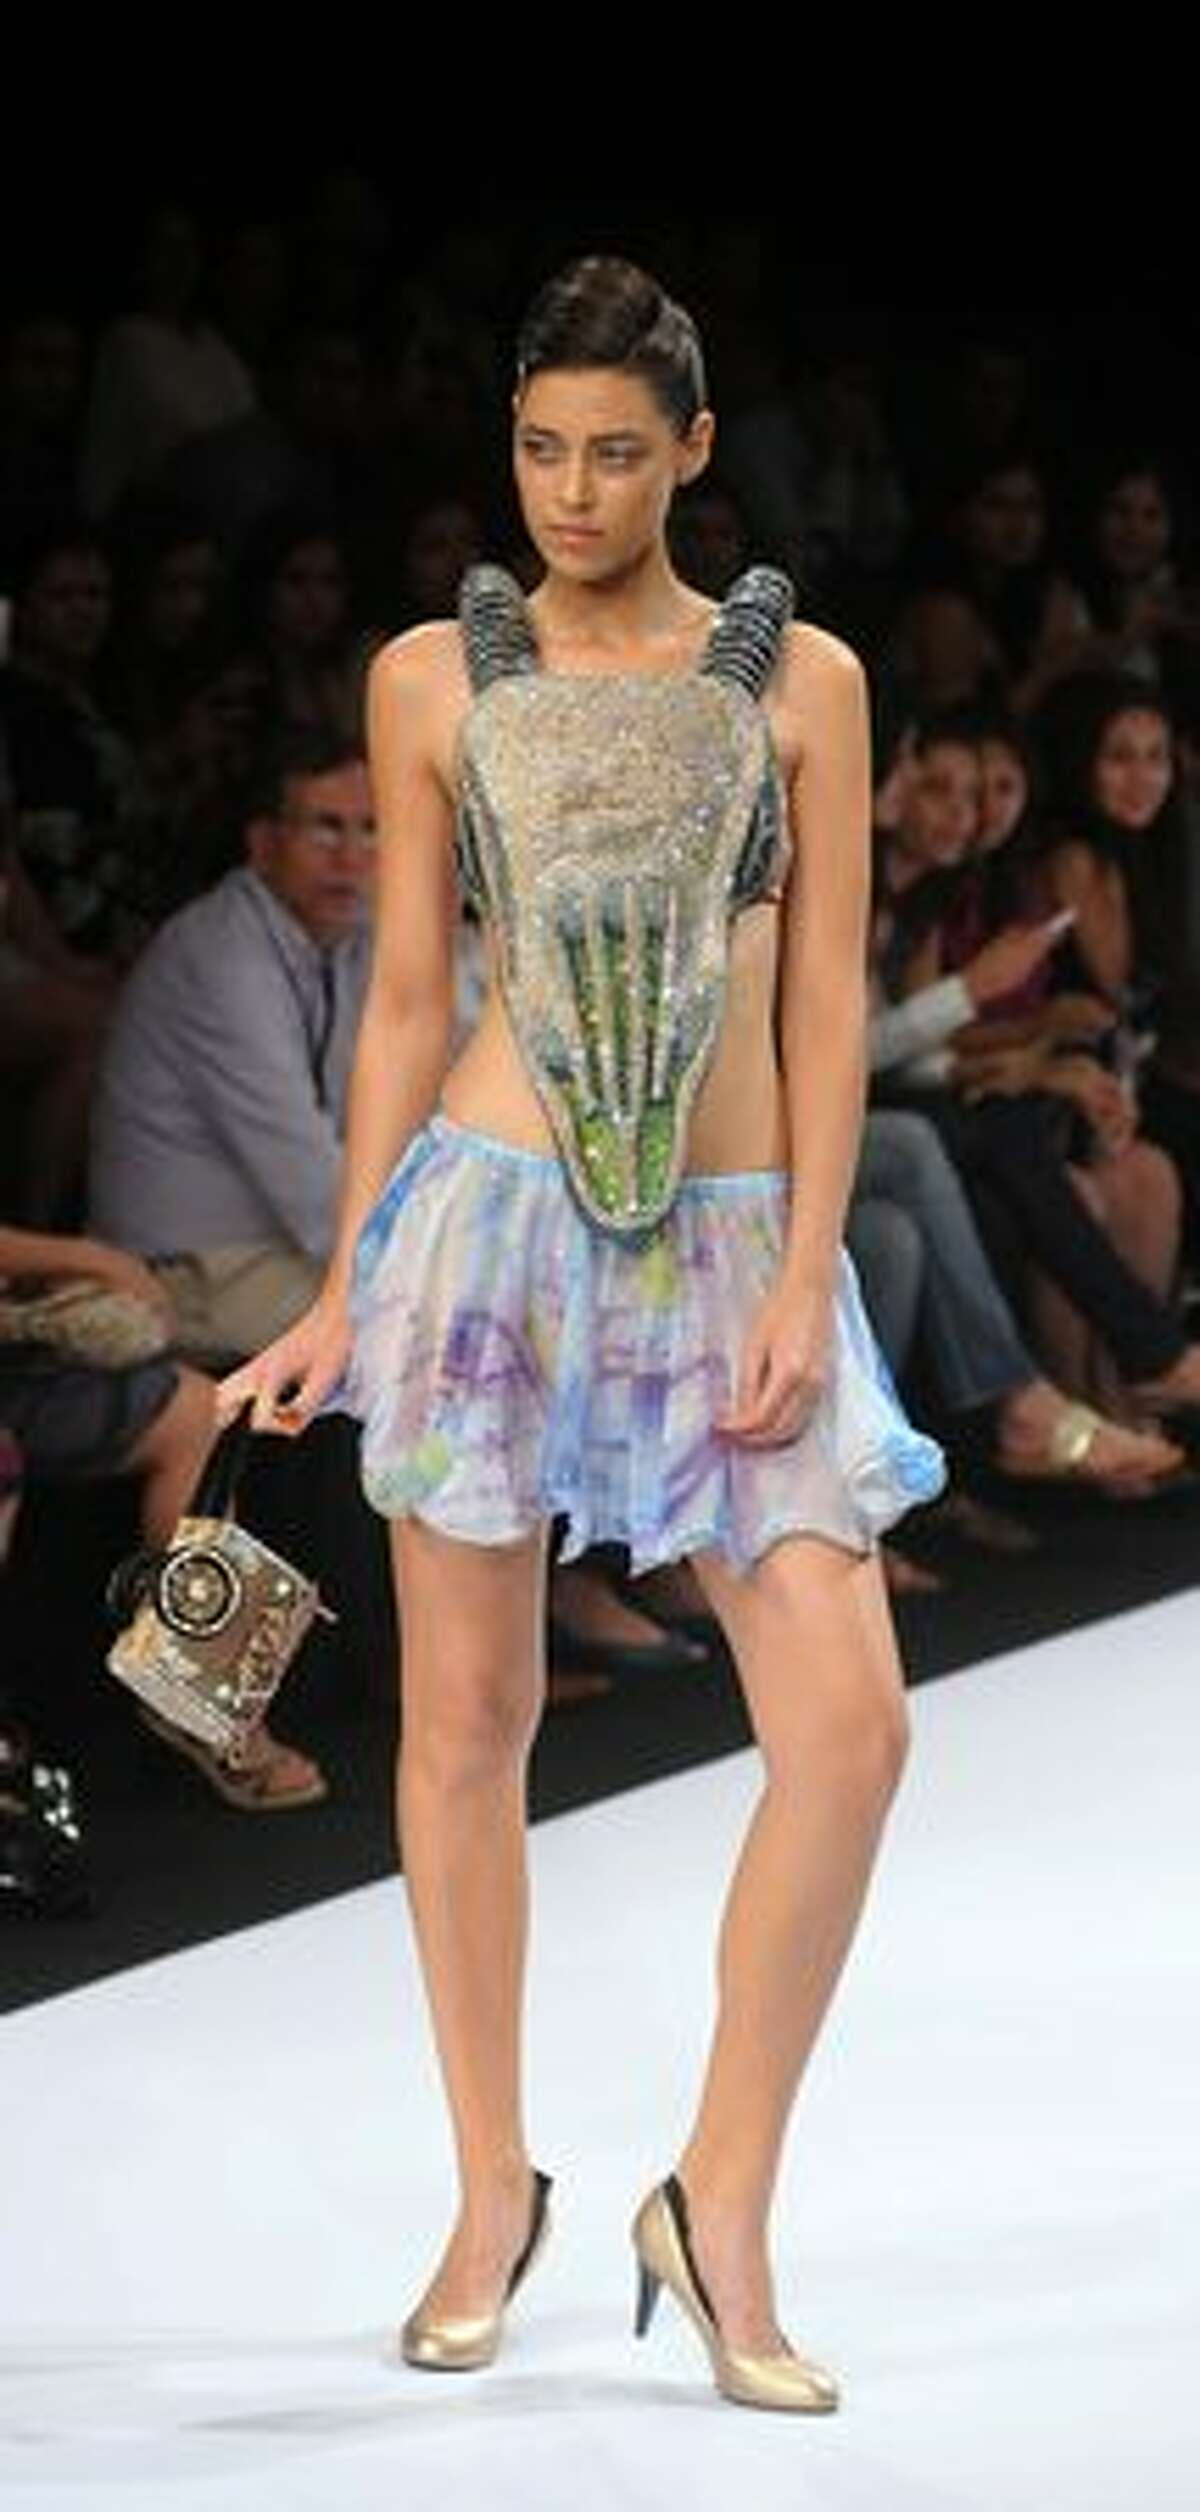 A model displays a creation during the Gennext Designers show at the opening of the Summer Resort 2011 Lakme Fashion Week in Mumbai, India on Friday, March 11, 2011.